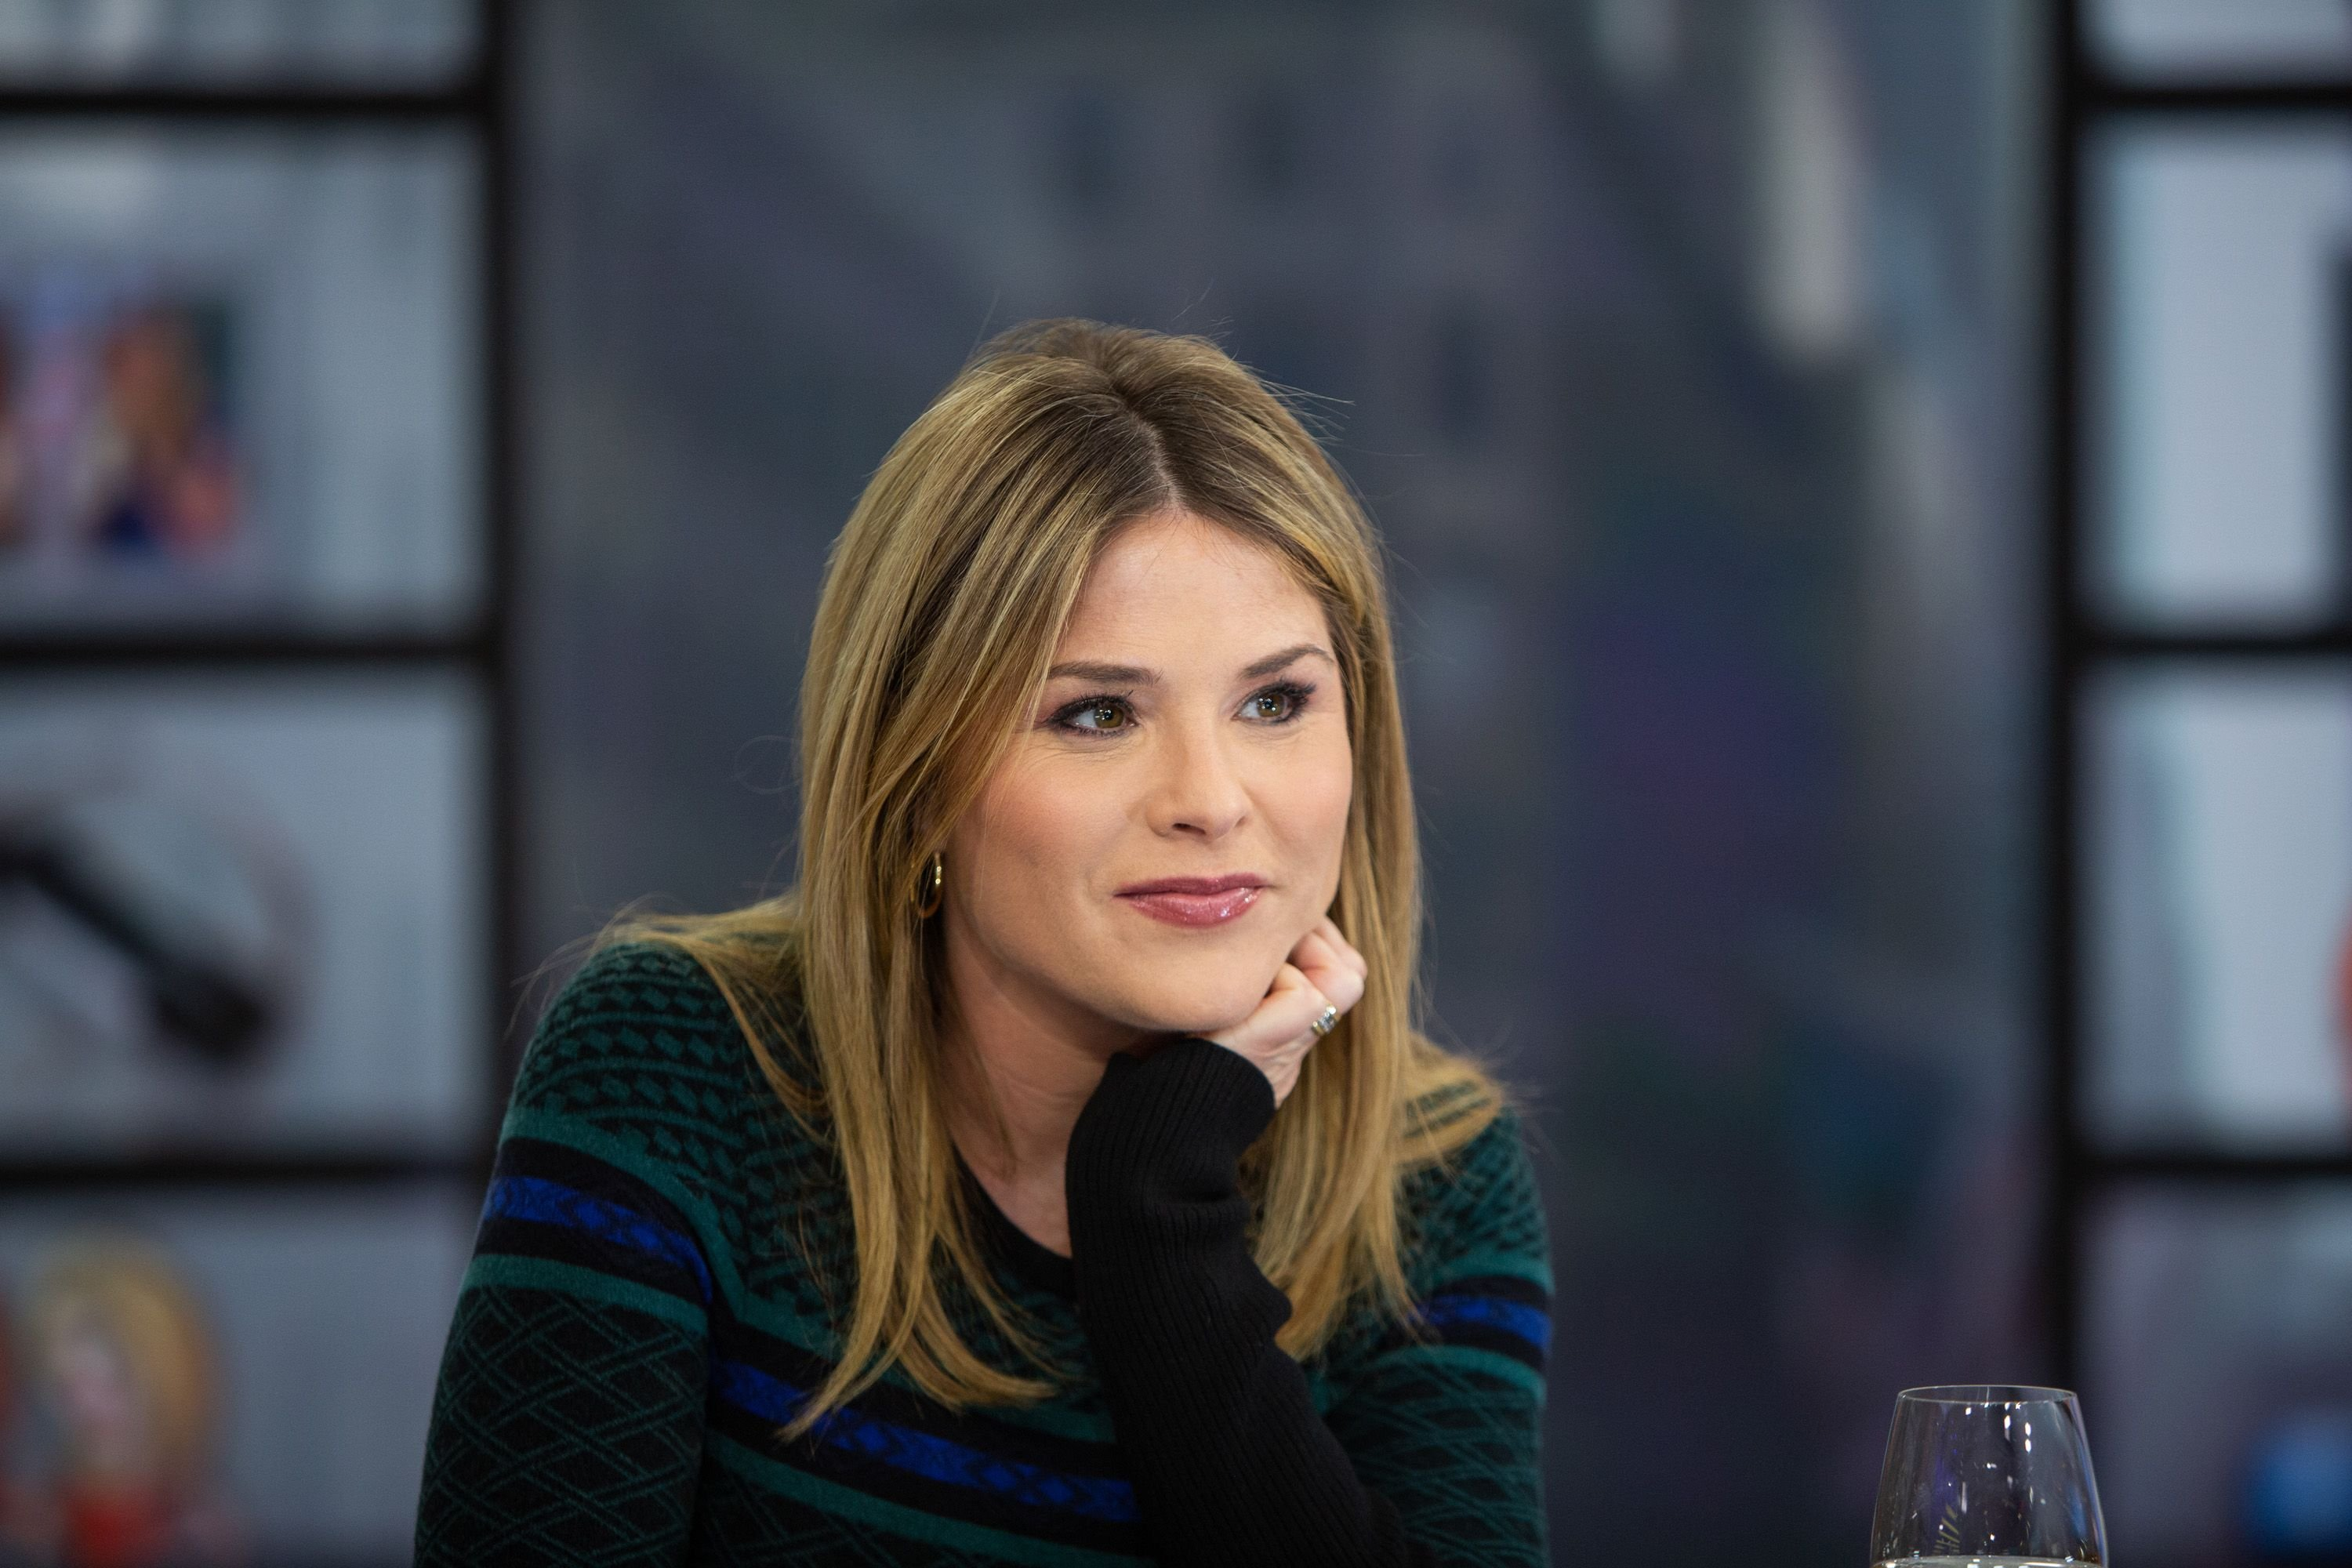 """Jenna Bush Hager during an episode of the """"Today"""" show on NBC   Photo: Nathan Congleton/NBCU Photo Bank/NBCUniversal via Getty Images"""